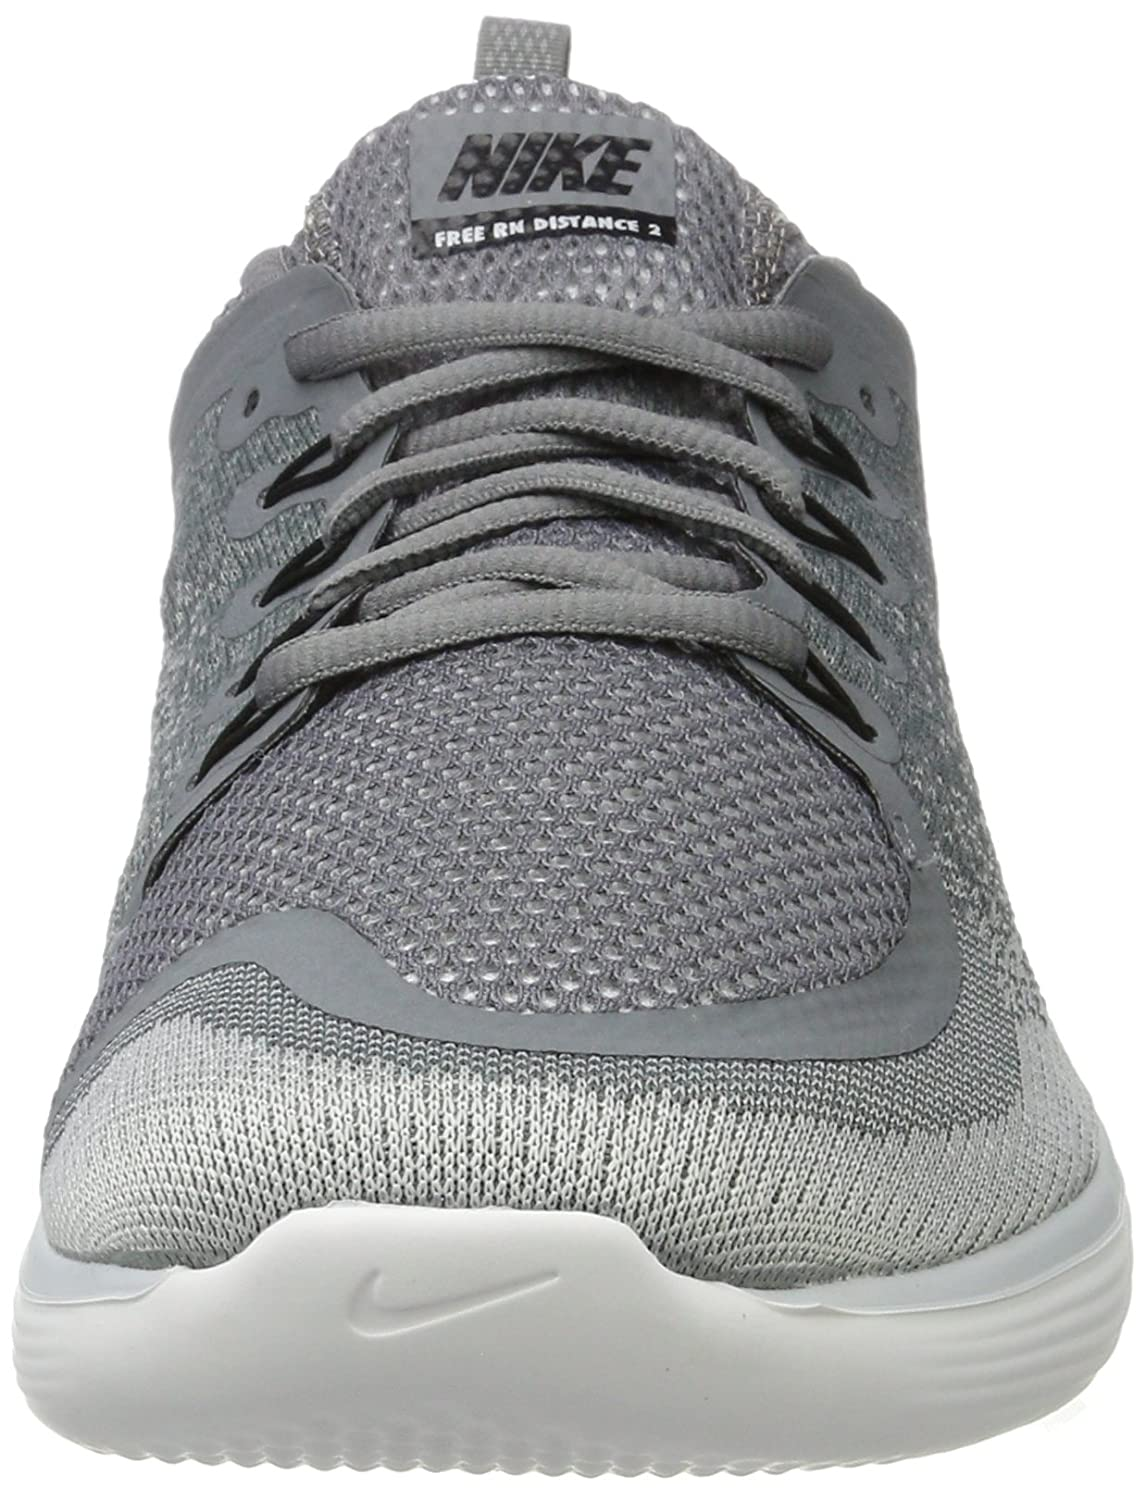 NIKE Shoe Men's Free RN Distance 2 Running Shoe NIKE B01MR3JNGM 10 D(M) US|Grey 612cb0